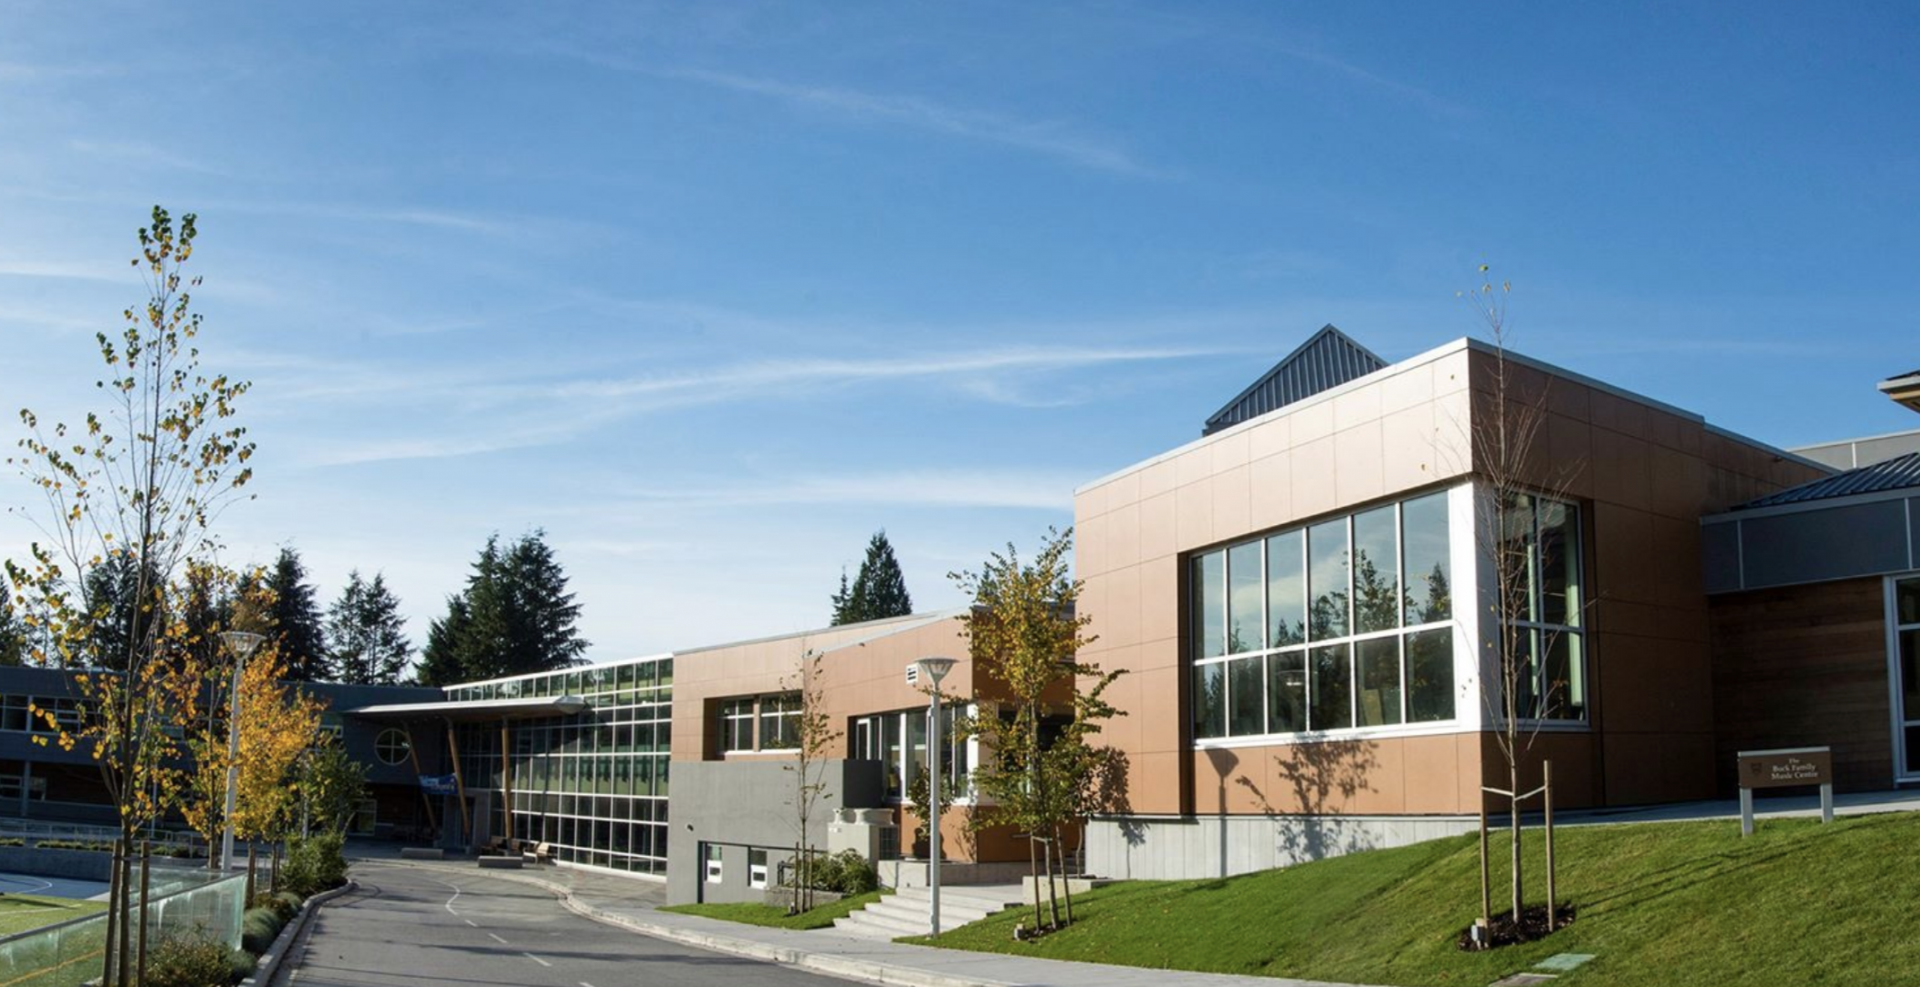 West Vancouver independent school cancels classes over coronavirus concerns